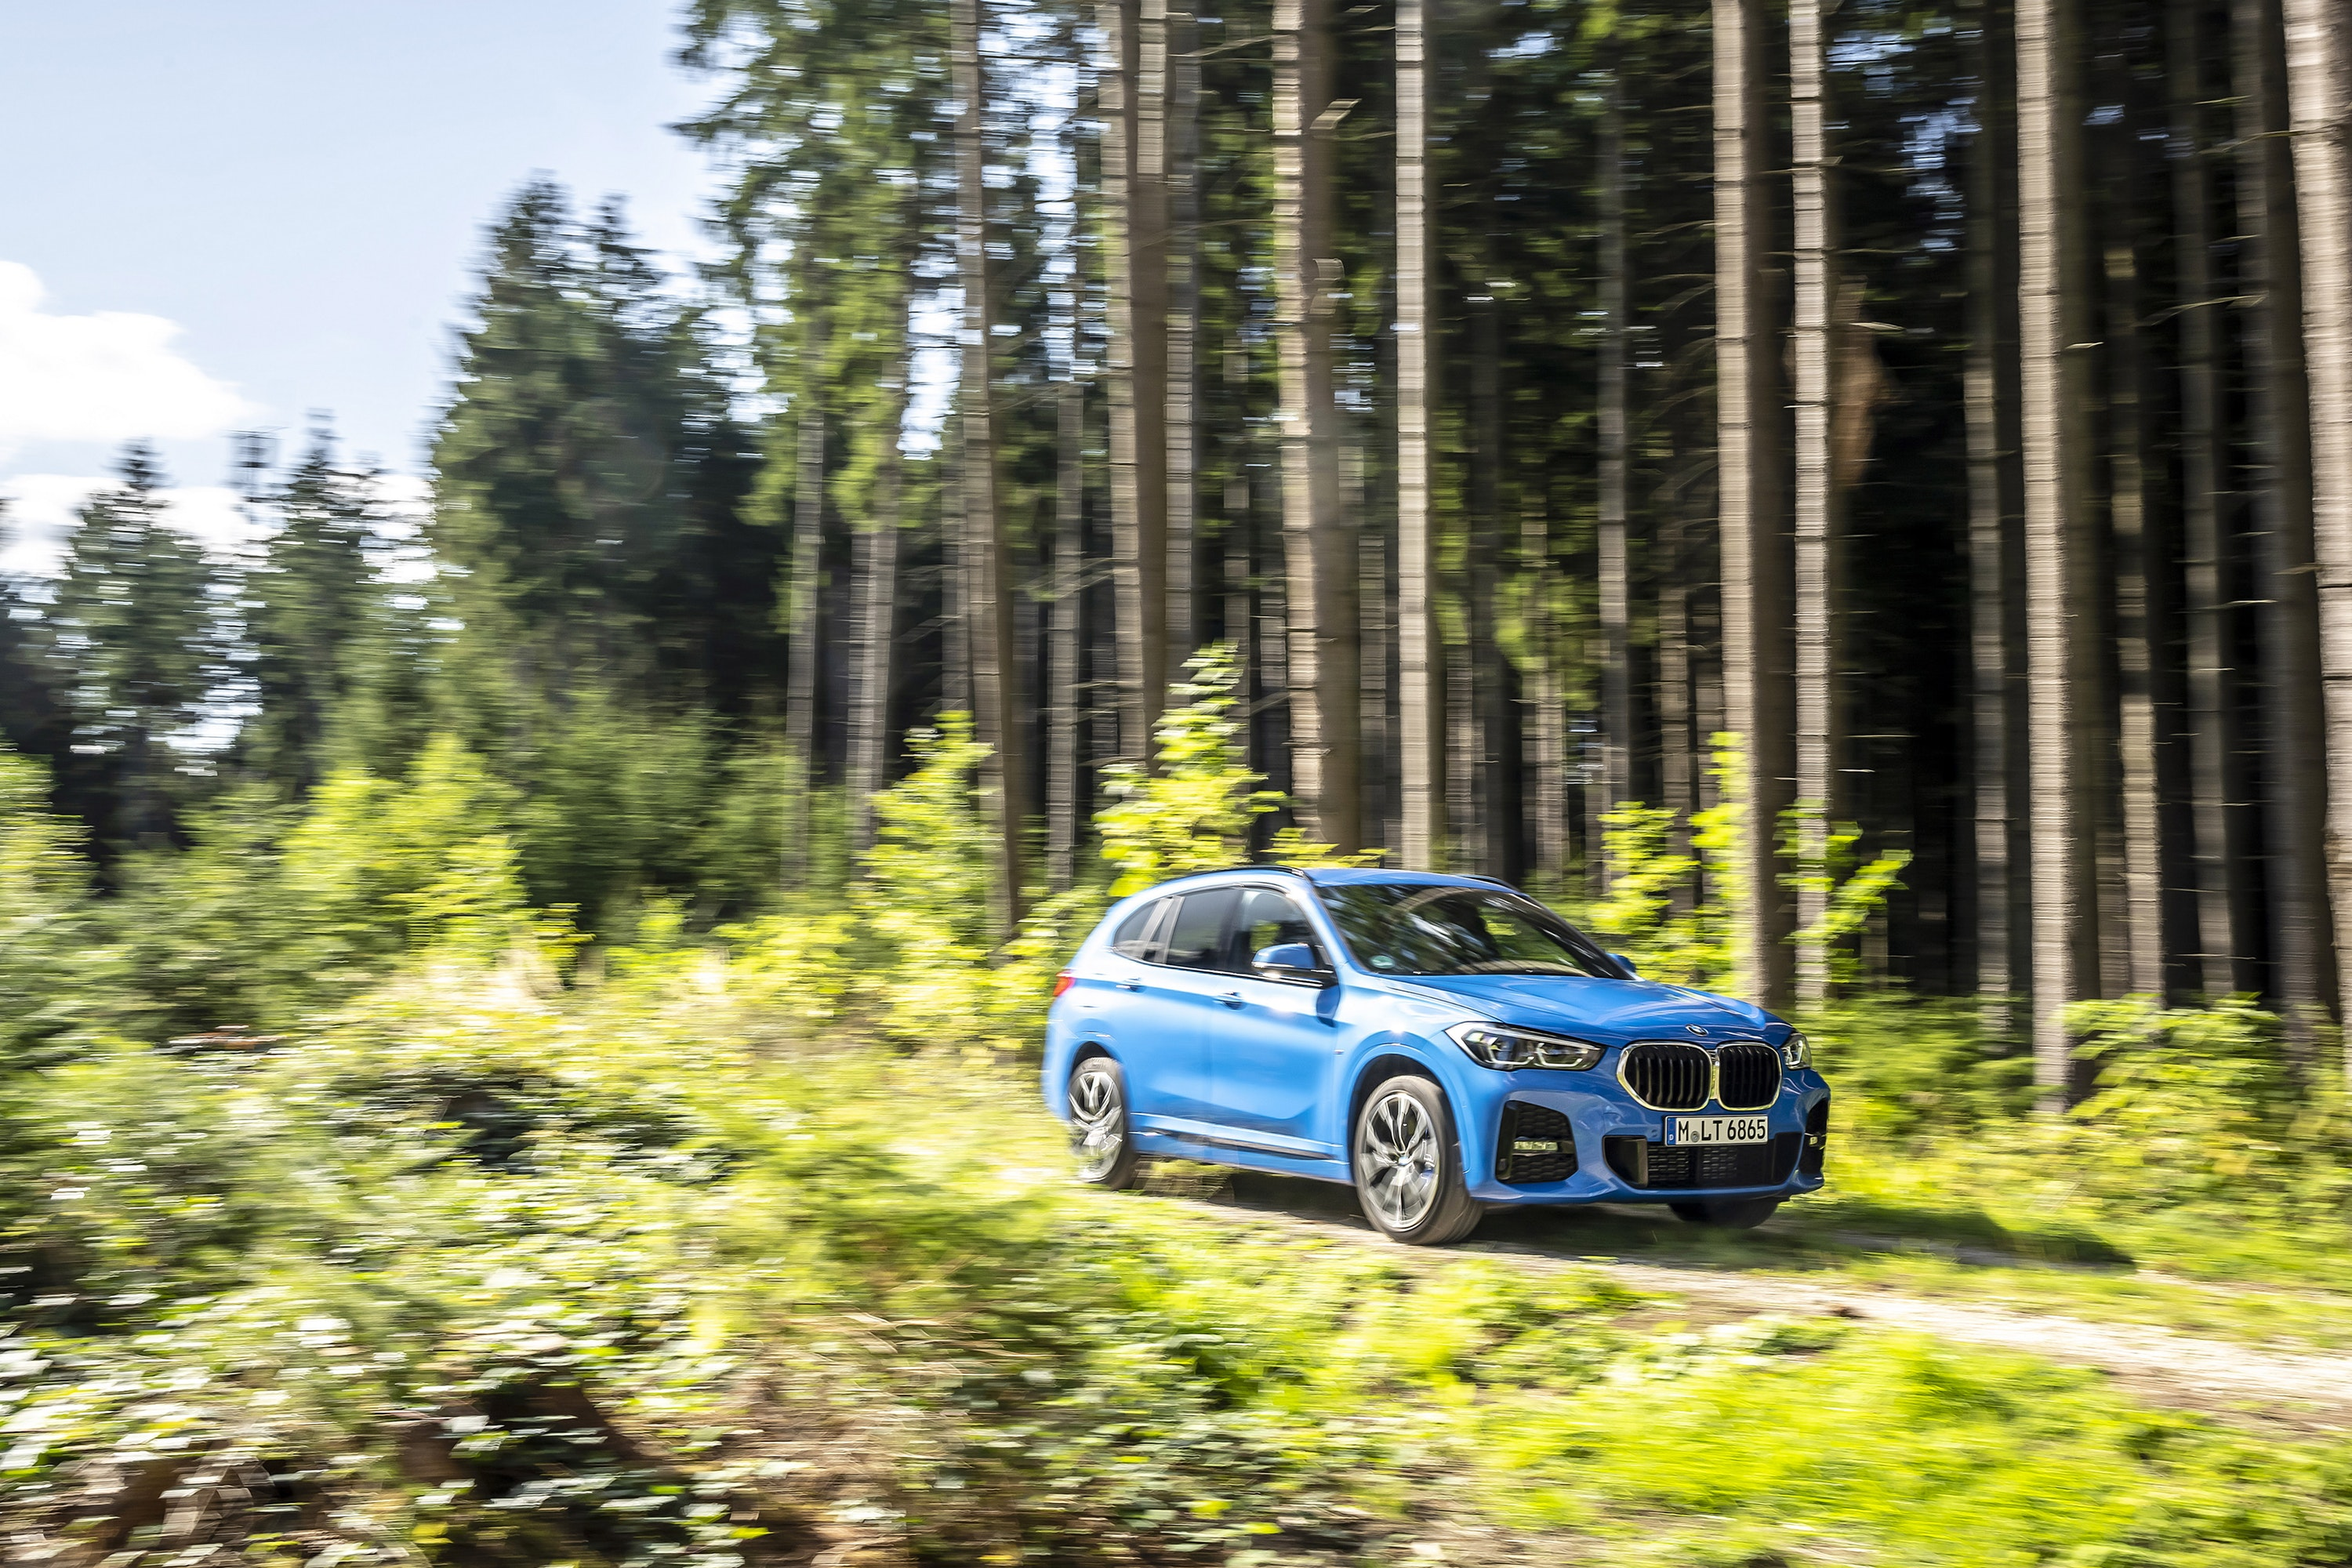 BMW X1 Driving through the woods